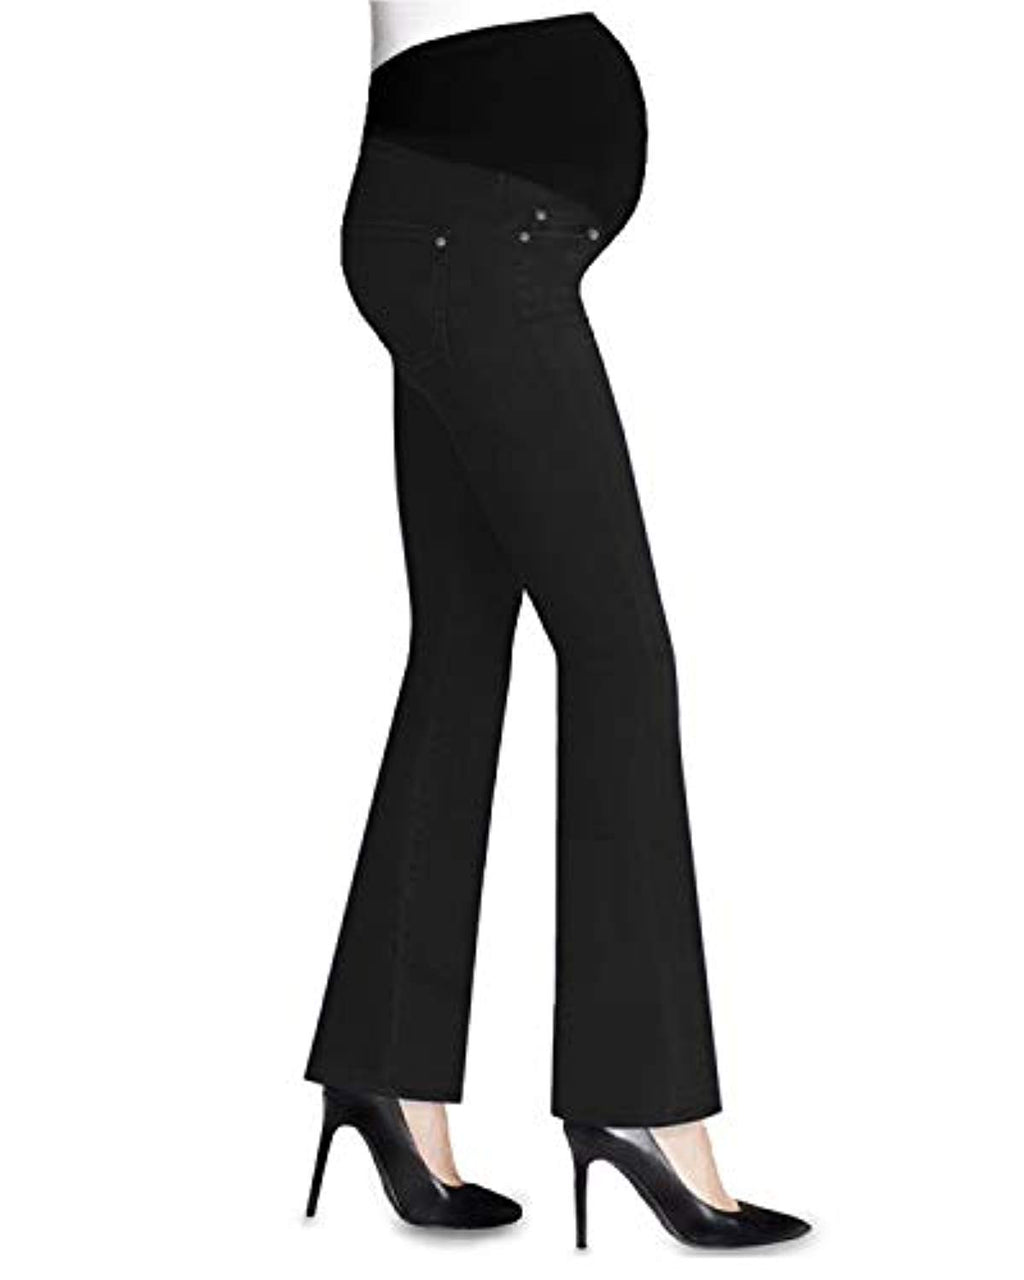 black stretch bootcut maternity jeans